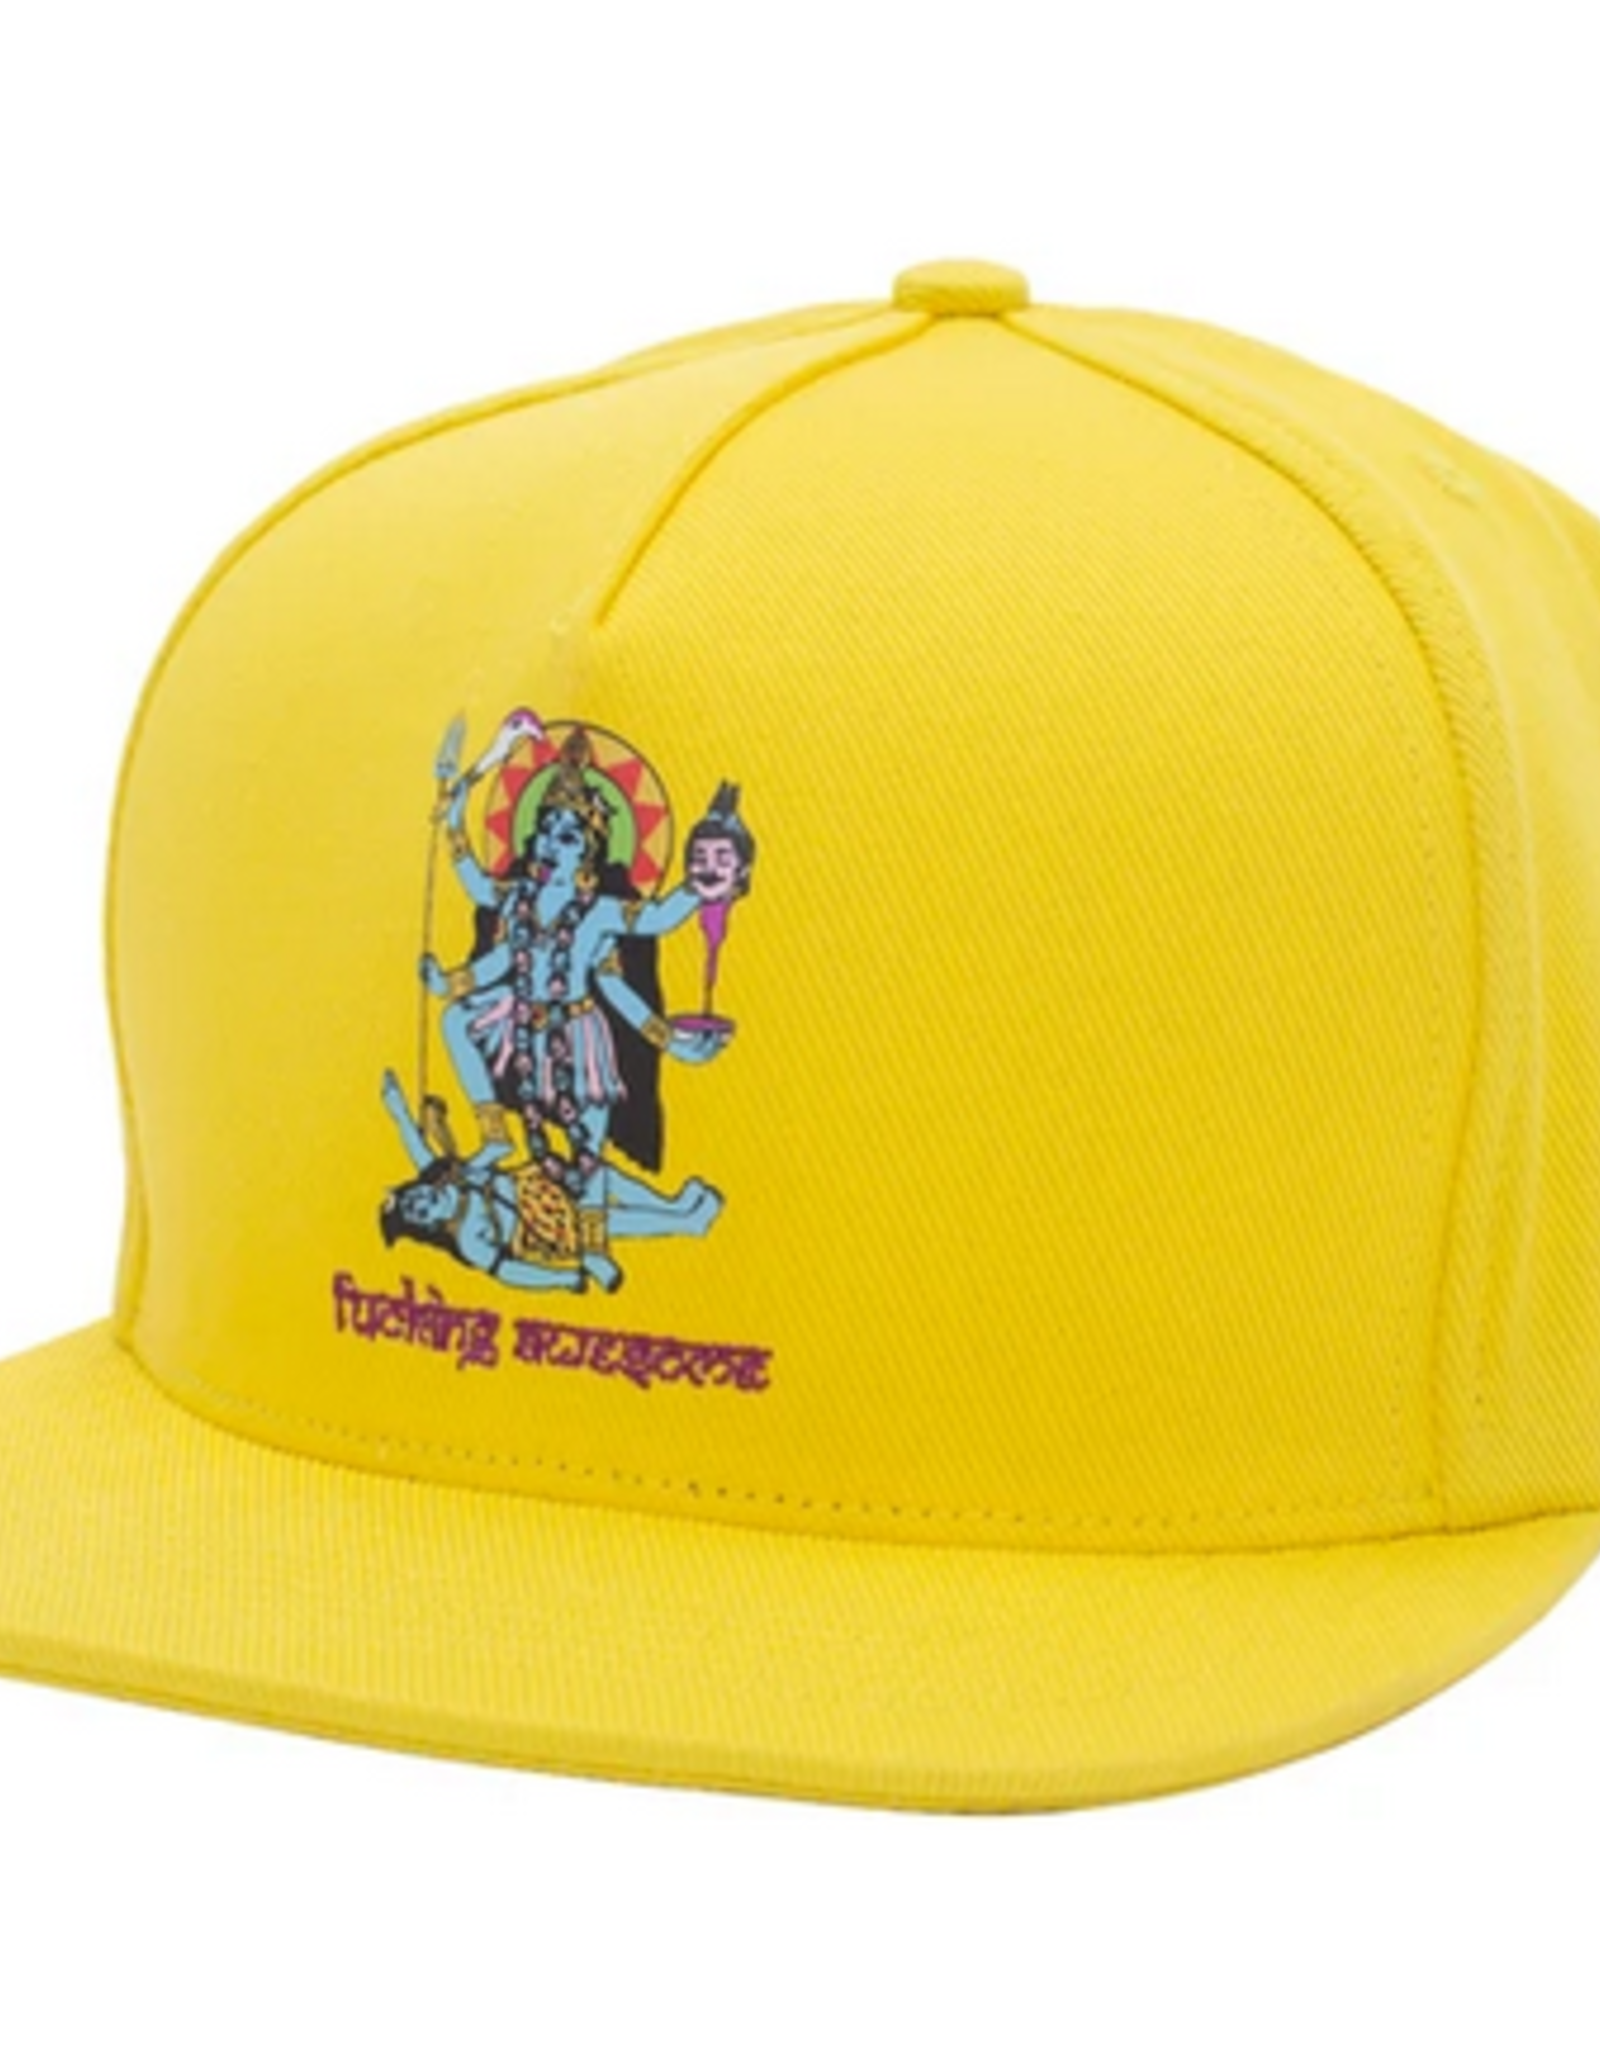 FUCKING AWESOME FUCKING AWESOME FA REDEMPTION SNAPBACK CAP GOLD